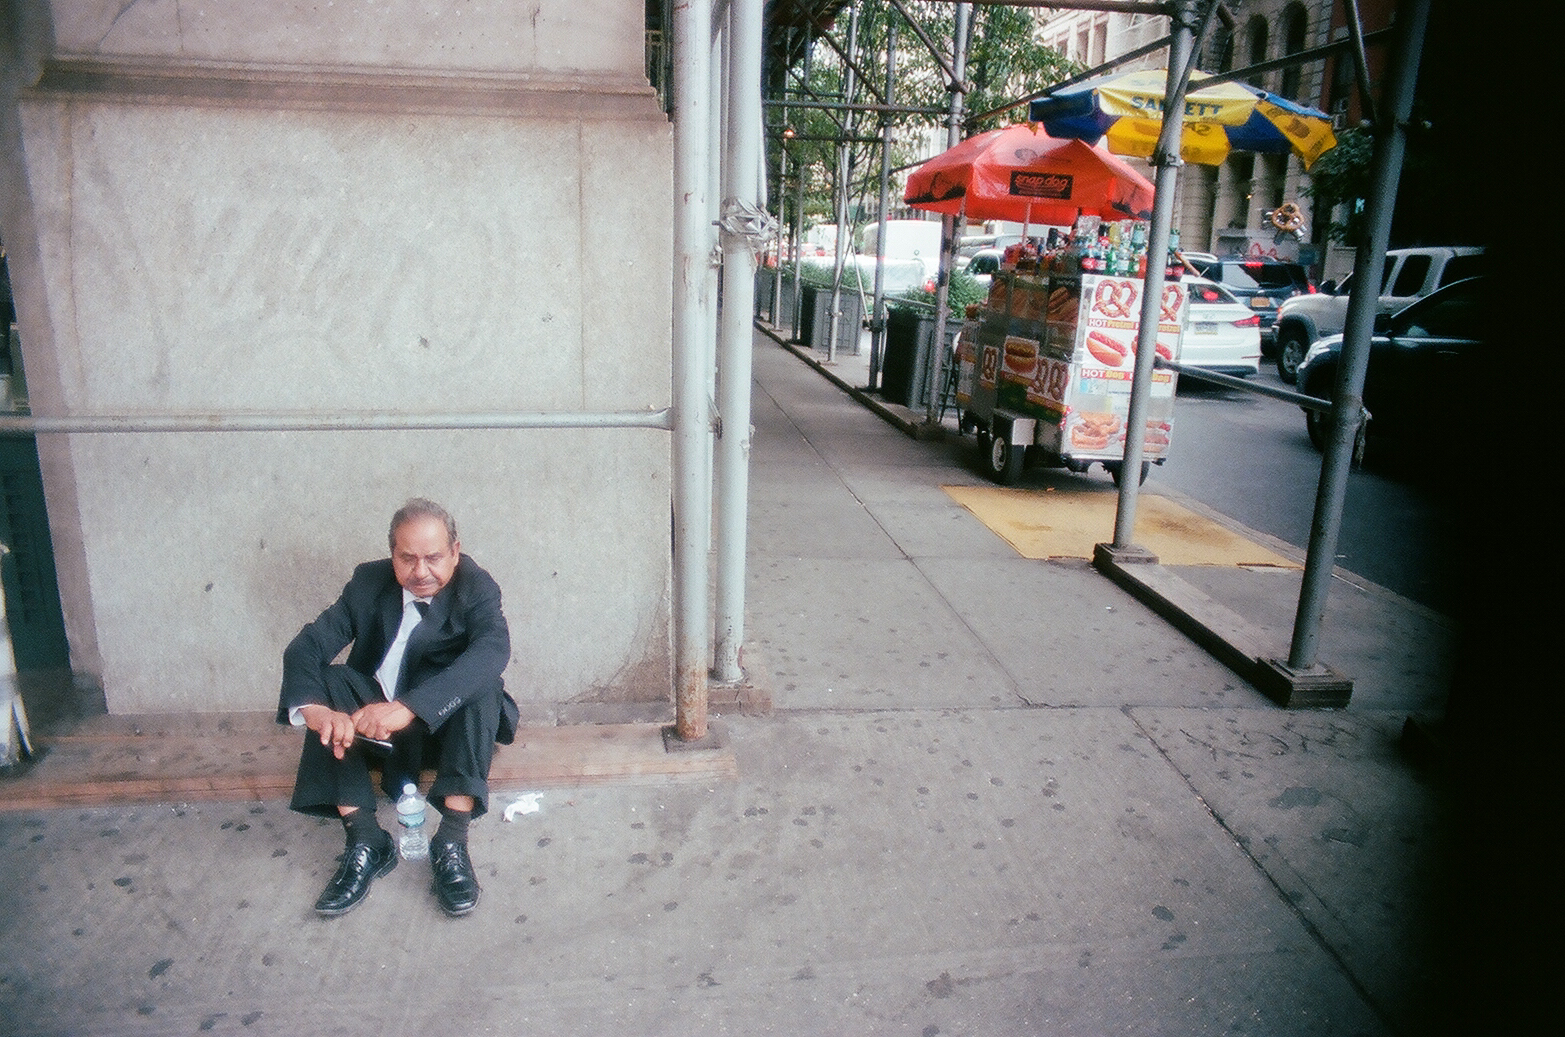 Man in Suit sitting on Sidewalk, Manhattan_Film Photography_NYC_Joe Curry Photography_2018.jpg